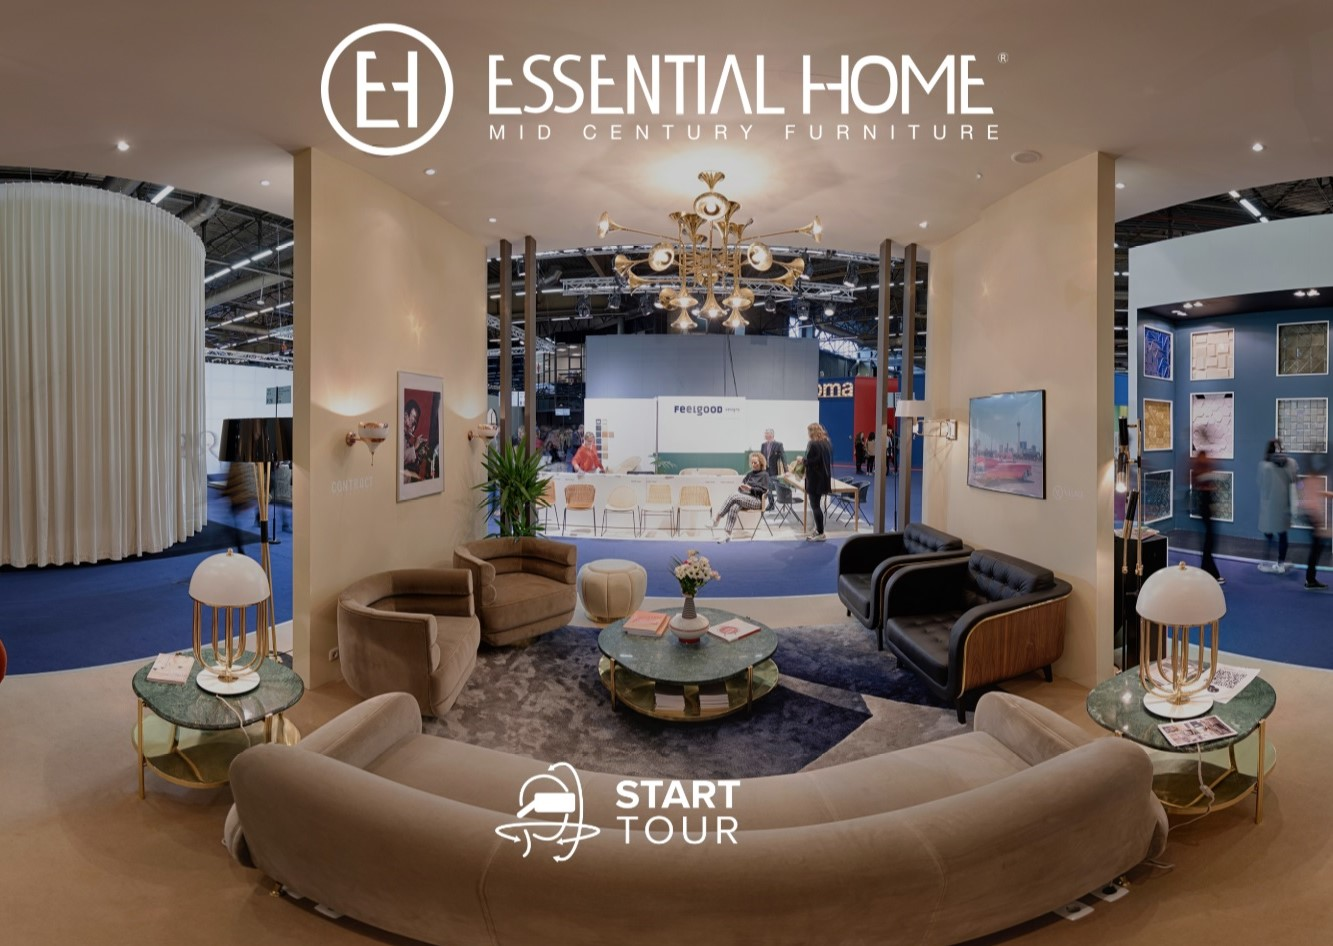 maison et objet 2020 Maison Et Objet 2020: Luxury Stands' Virtual Tour  maison objet 2020 luxury stands virtual tour 6